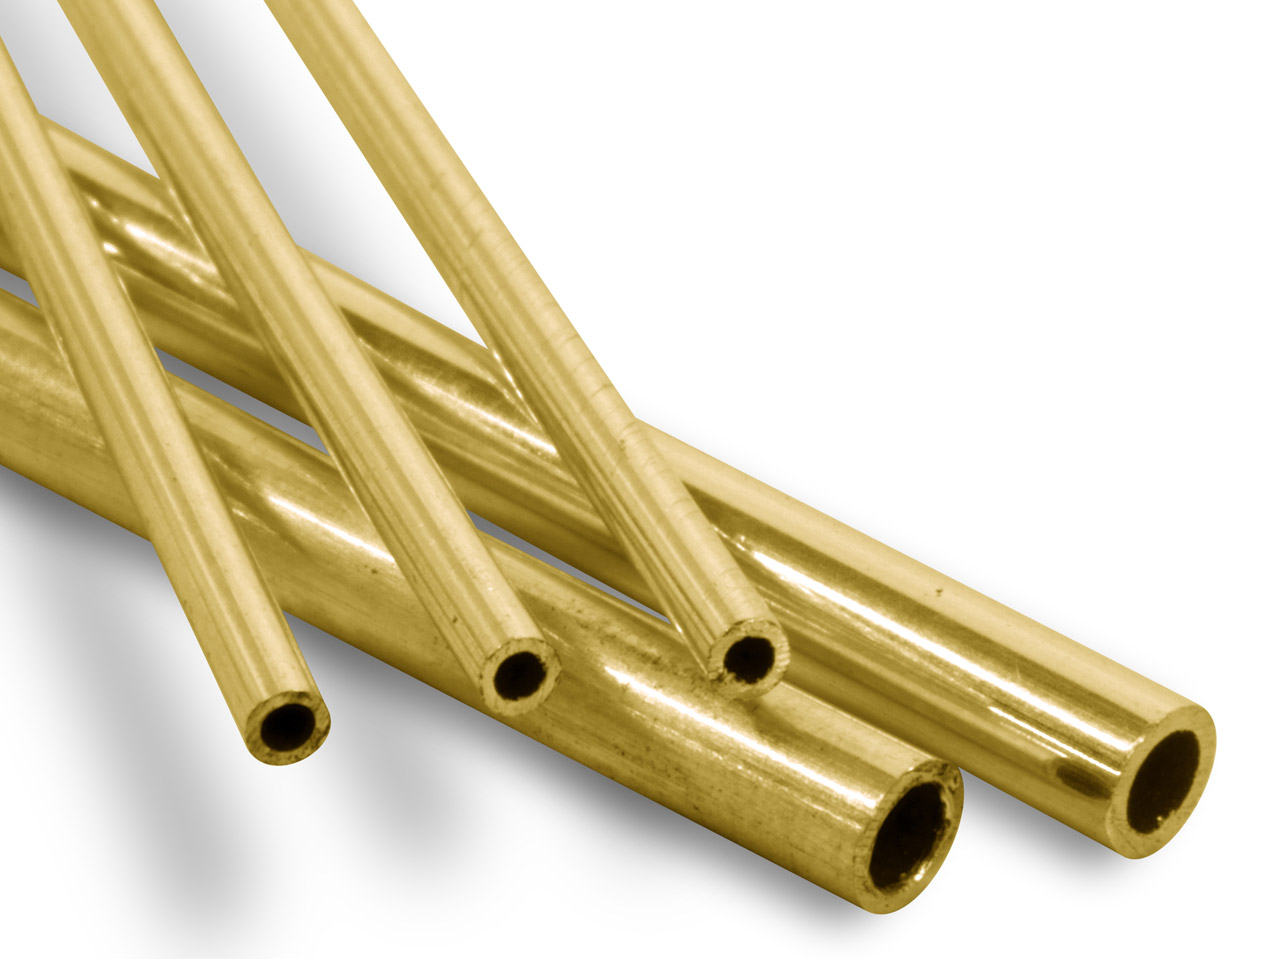 9ct Yellow DF Tube, Ref 8,         Outside Diameter 2.4mm,            Inside Diameter 1.6mm, 0.4mm Wall  Thickness